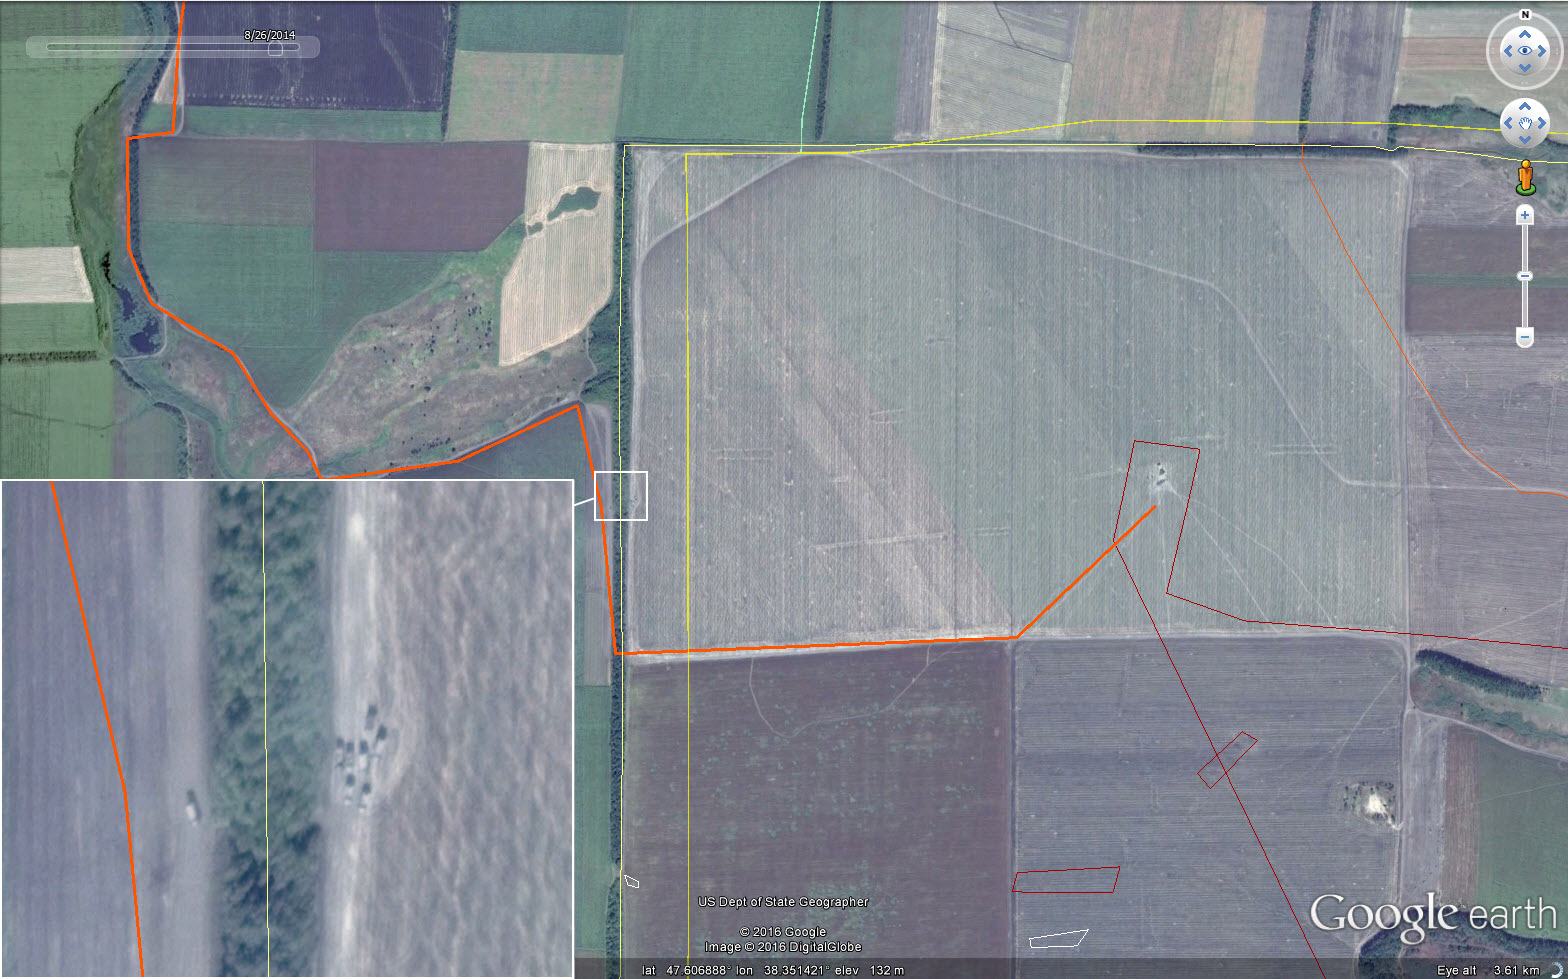 The orange line marks cross-border vehicle path. The yellow line marks the Russia-Ukraine border, according to Google Earth. The line along the treeline is the more accurate representation of the border.